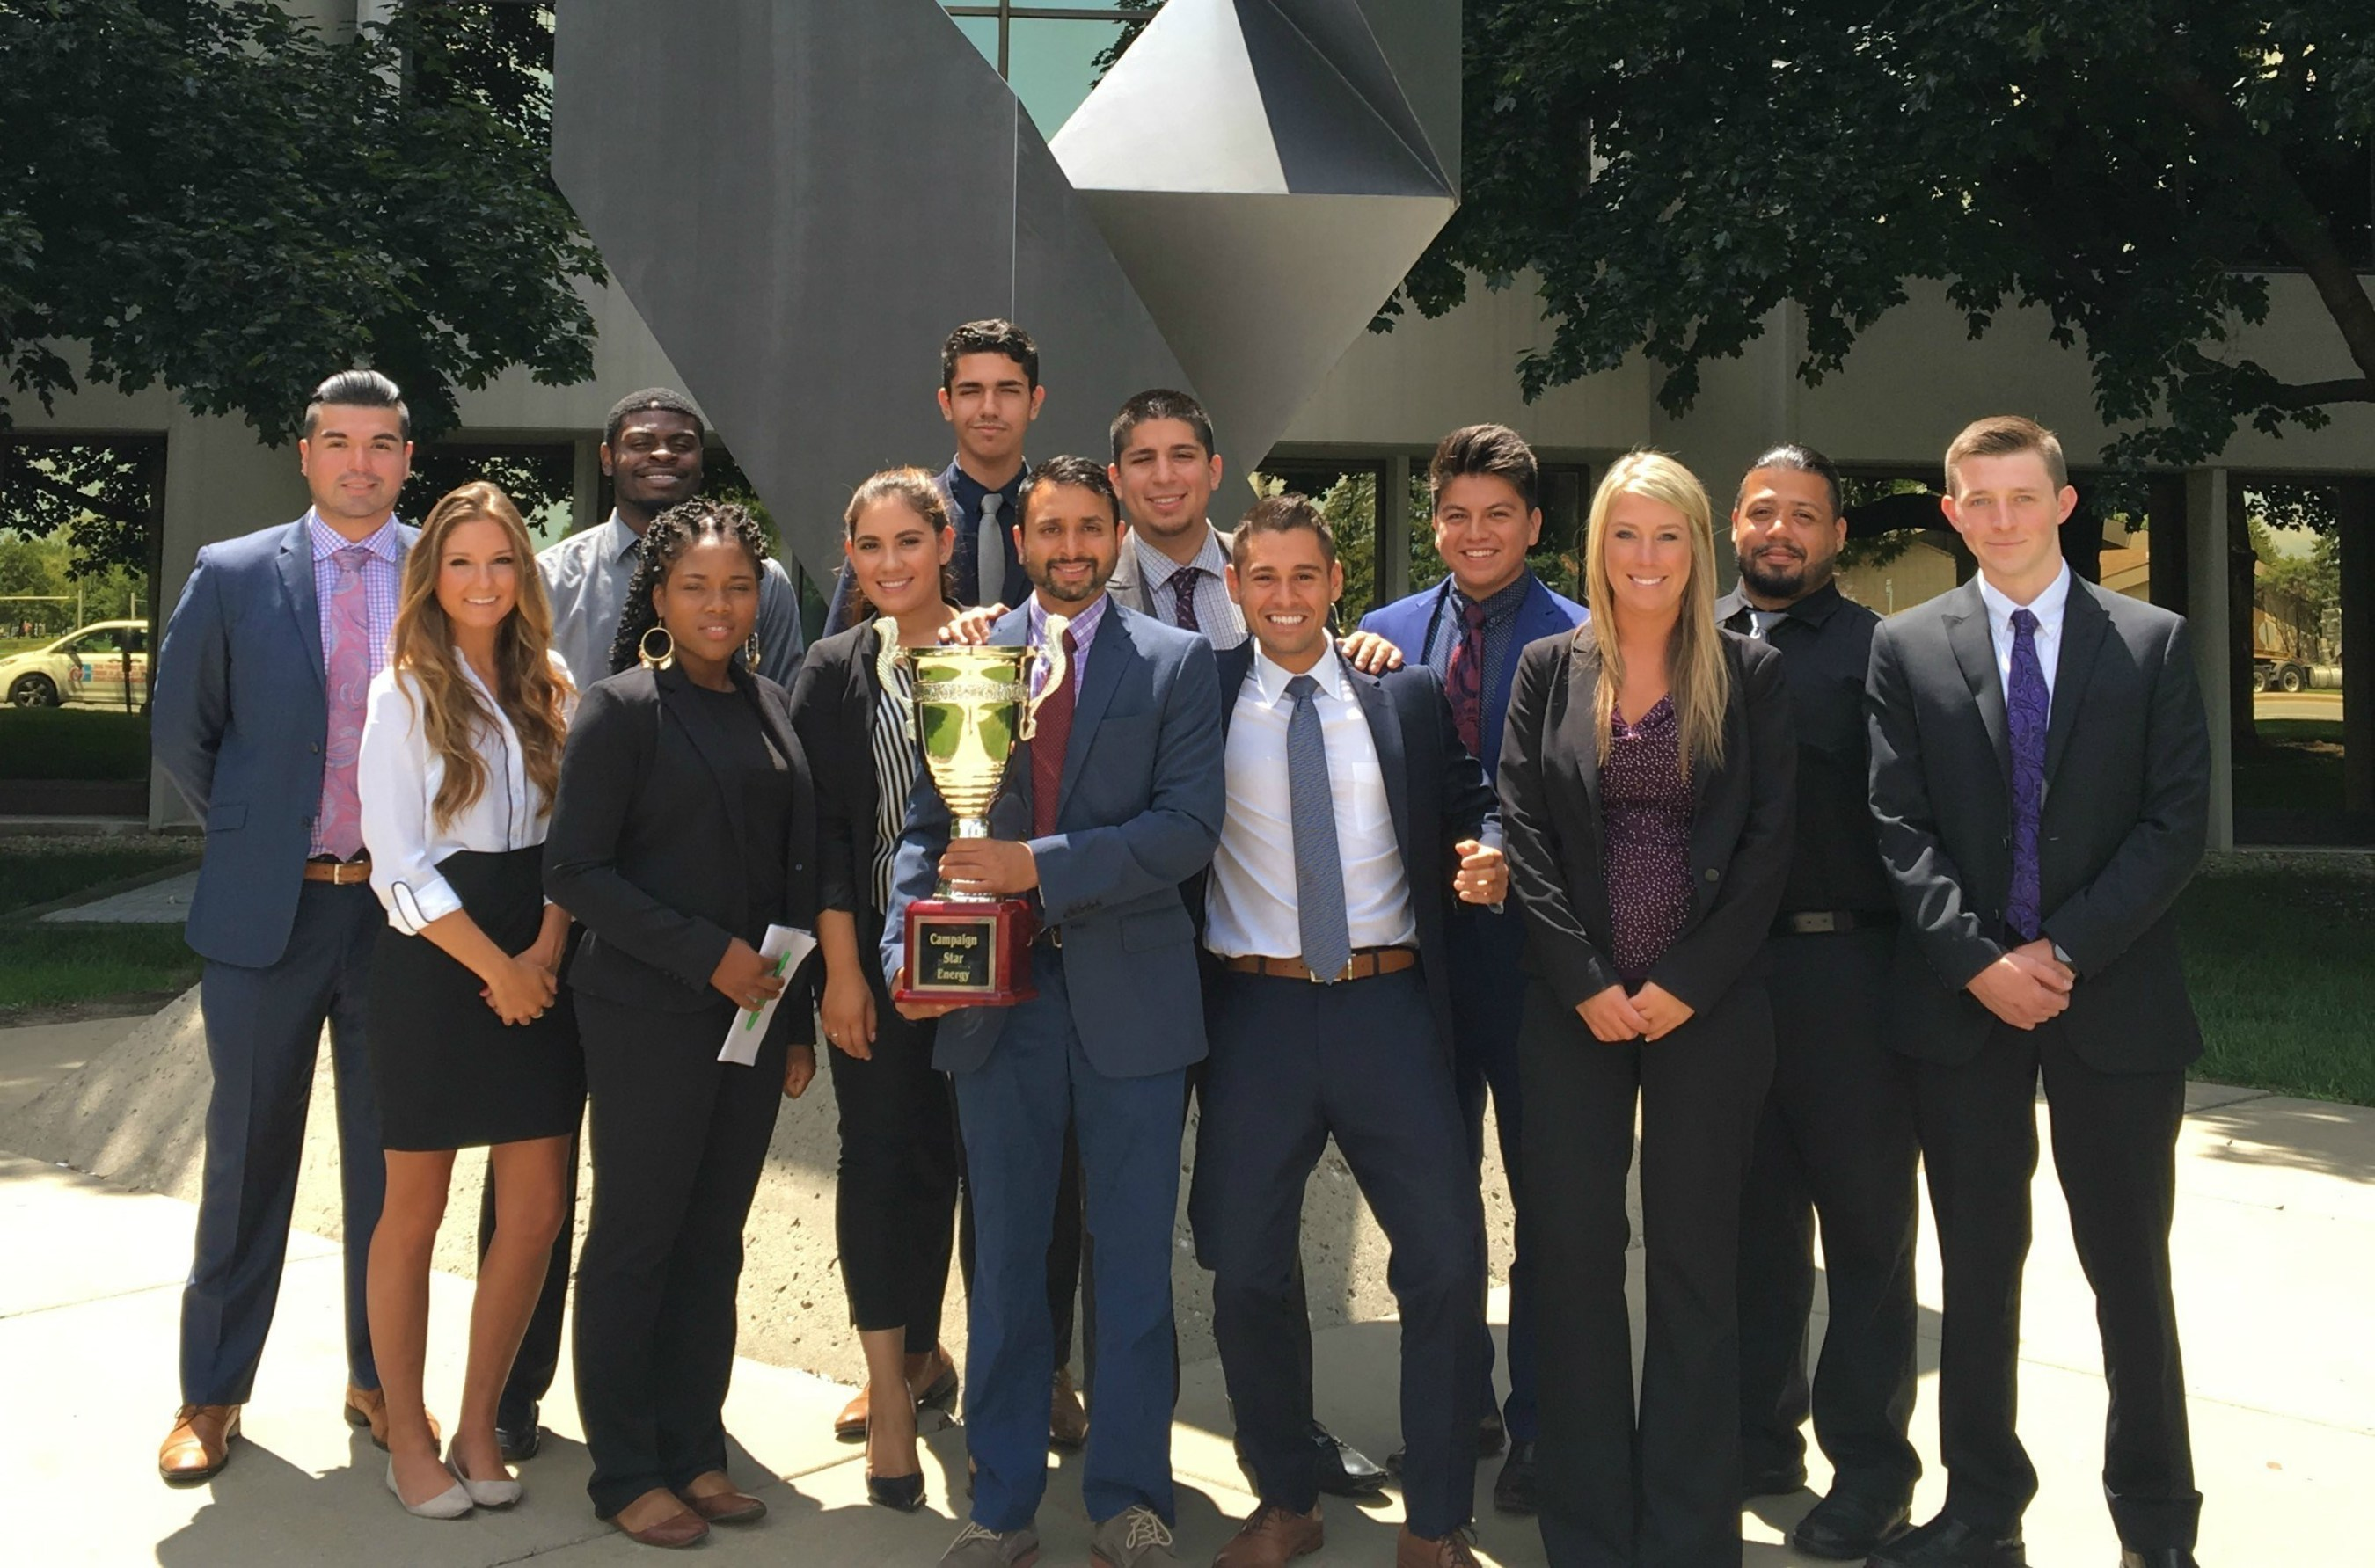 Marketing and consulting company One Chicago, Inc. received a national sales award for outstanding results on behalf of a prestigious energy client. President Juan Olmos and the One Chicago staff pose with the Campaign Cup trophy.